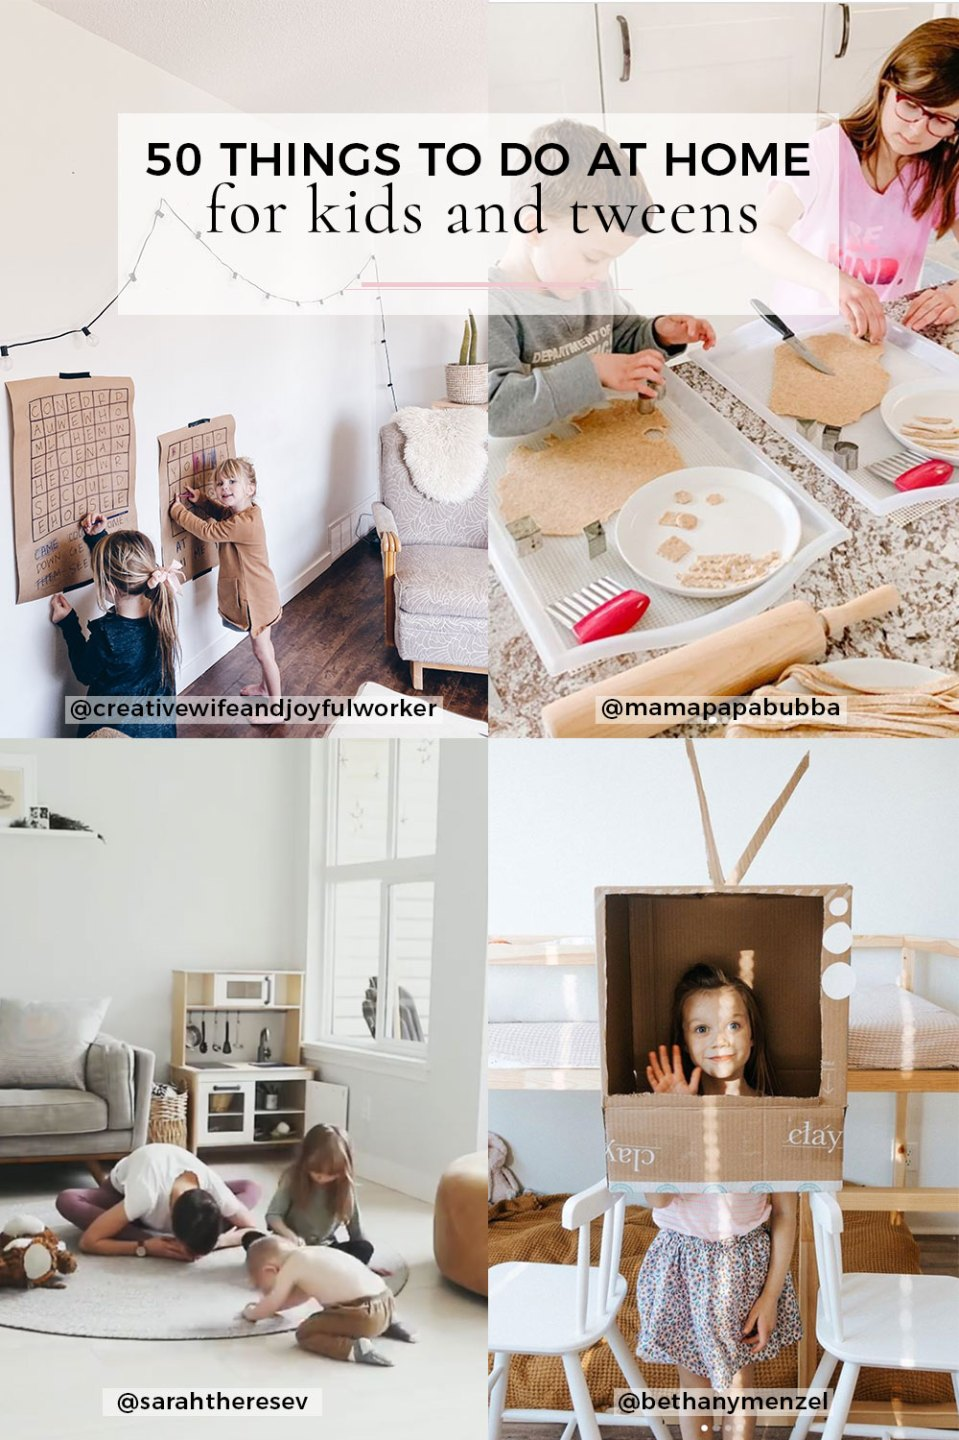 50 Fun Activities to do at Home with Kids